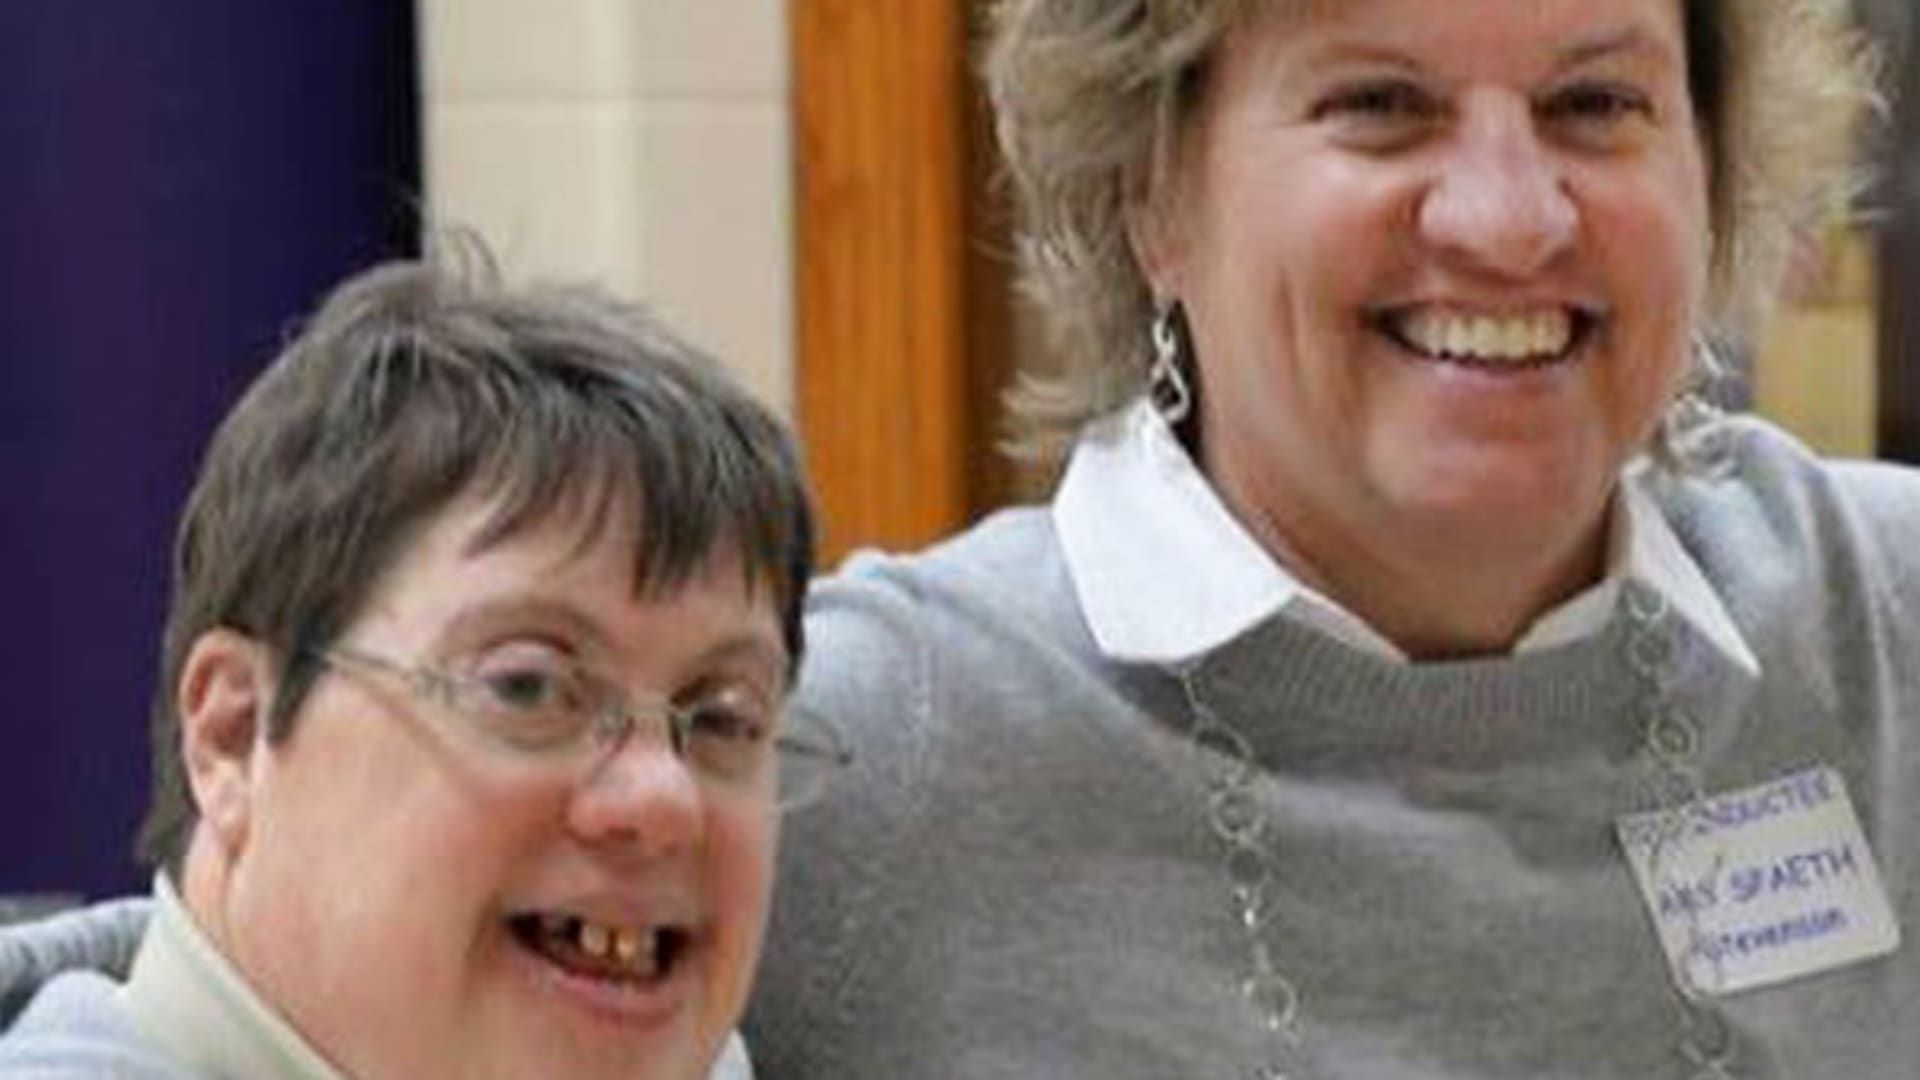 Marlo Spaeth (left) was fired from Walmart in July 2015, after working there for nearly 16 years. Her sister, Amy Jo Stevenson, has been in a legal battle with the retail giant since then. She filed a discrimination complaint with the U.S. Equal Employment Opportunity Commission.